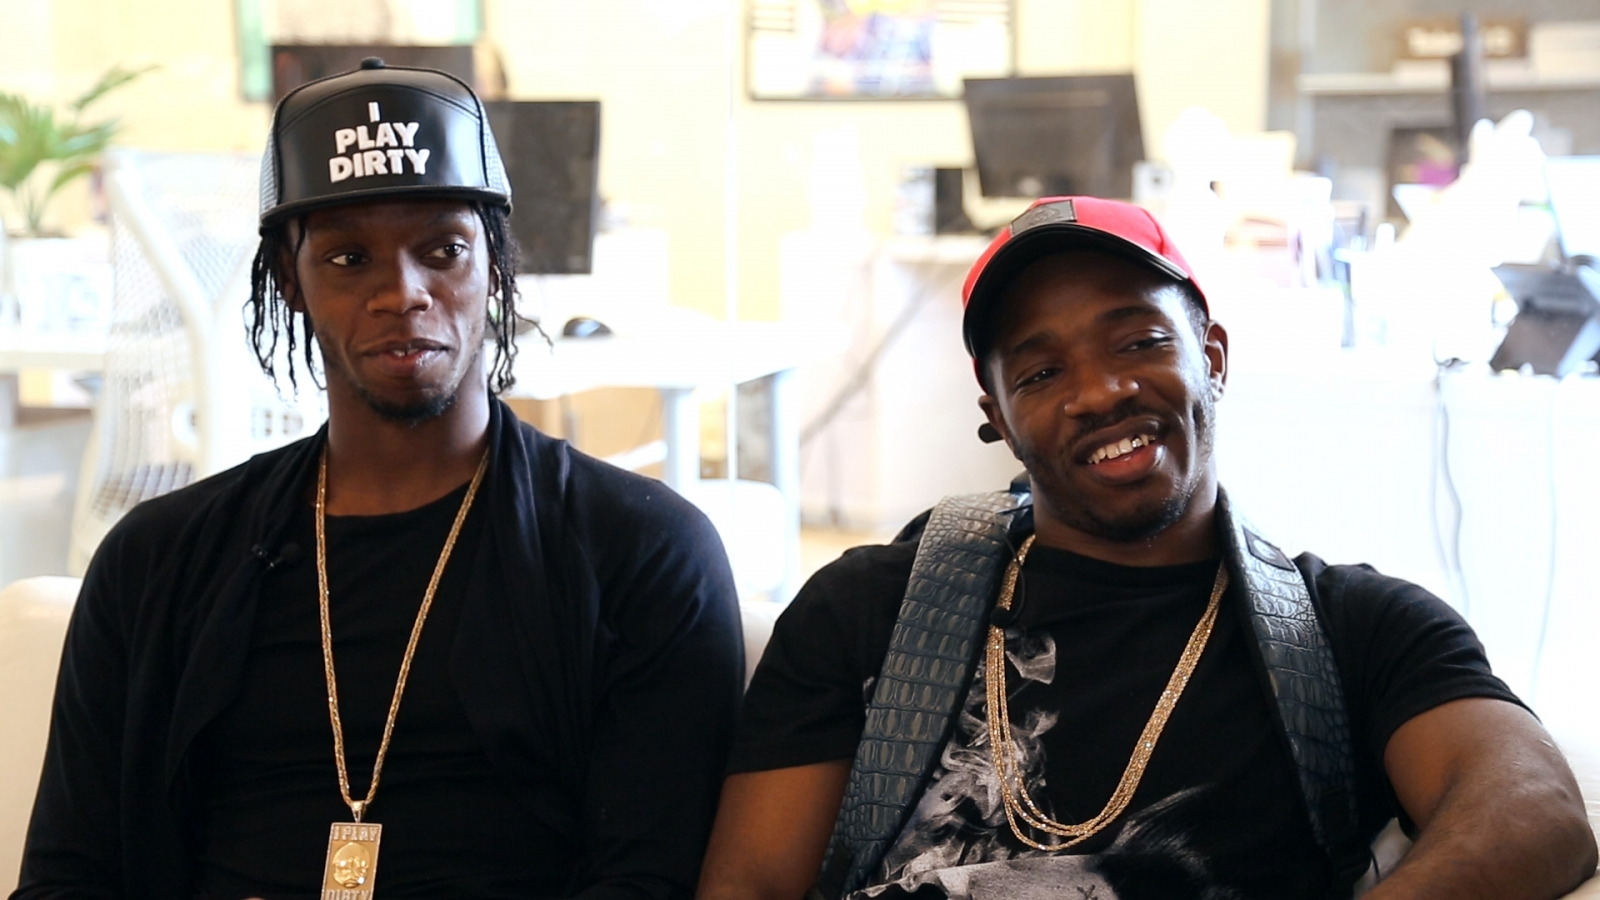 'KREPT & KONAN' TO TEAM UP WITH SOUTH LONDON MP TO CREATE INSPIRATIONAL PROJECTS FOR LOCAL YOUTH!